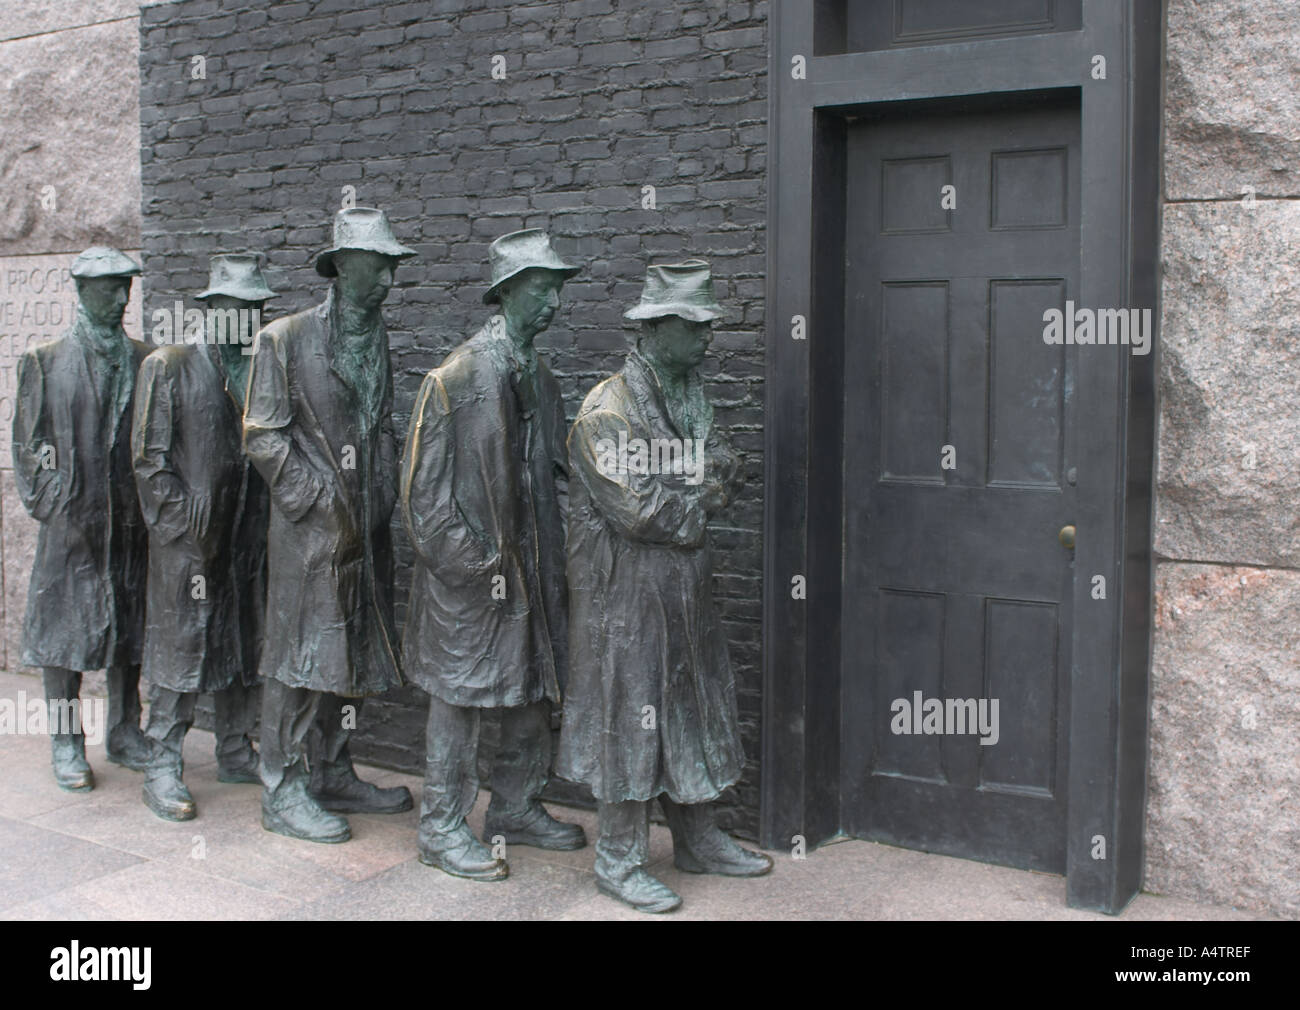 Statue of people in line maybe a bread line soup kitchen line or a work line FDR Memorial Washington DC - Stock Image